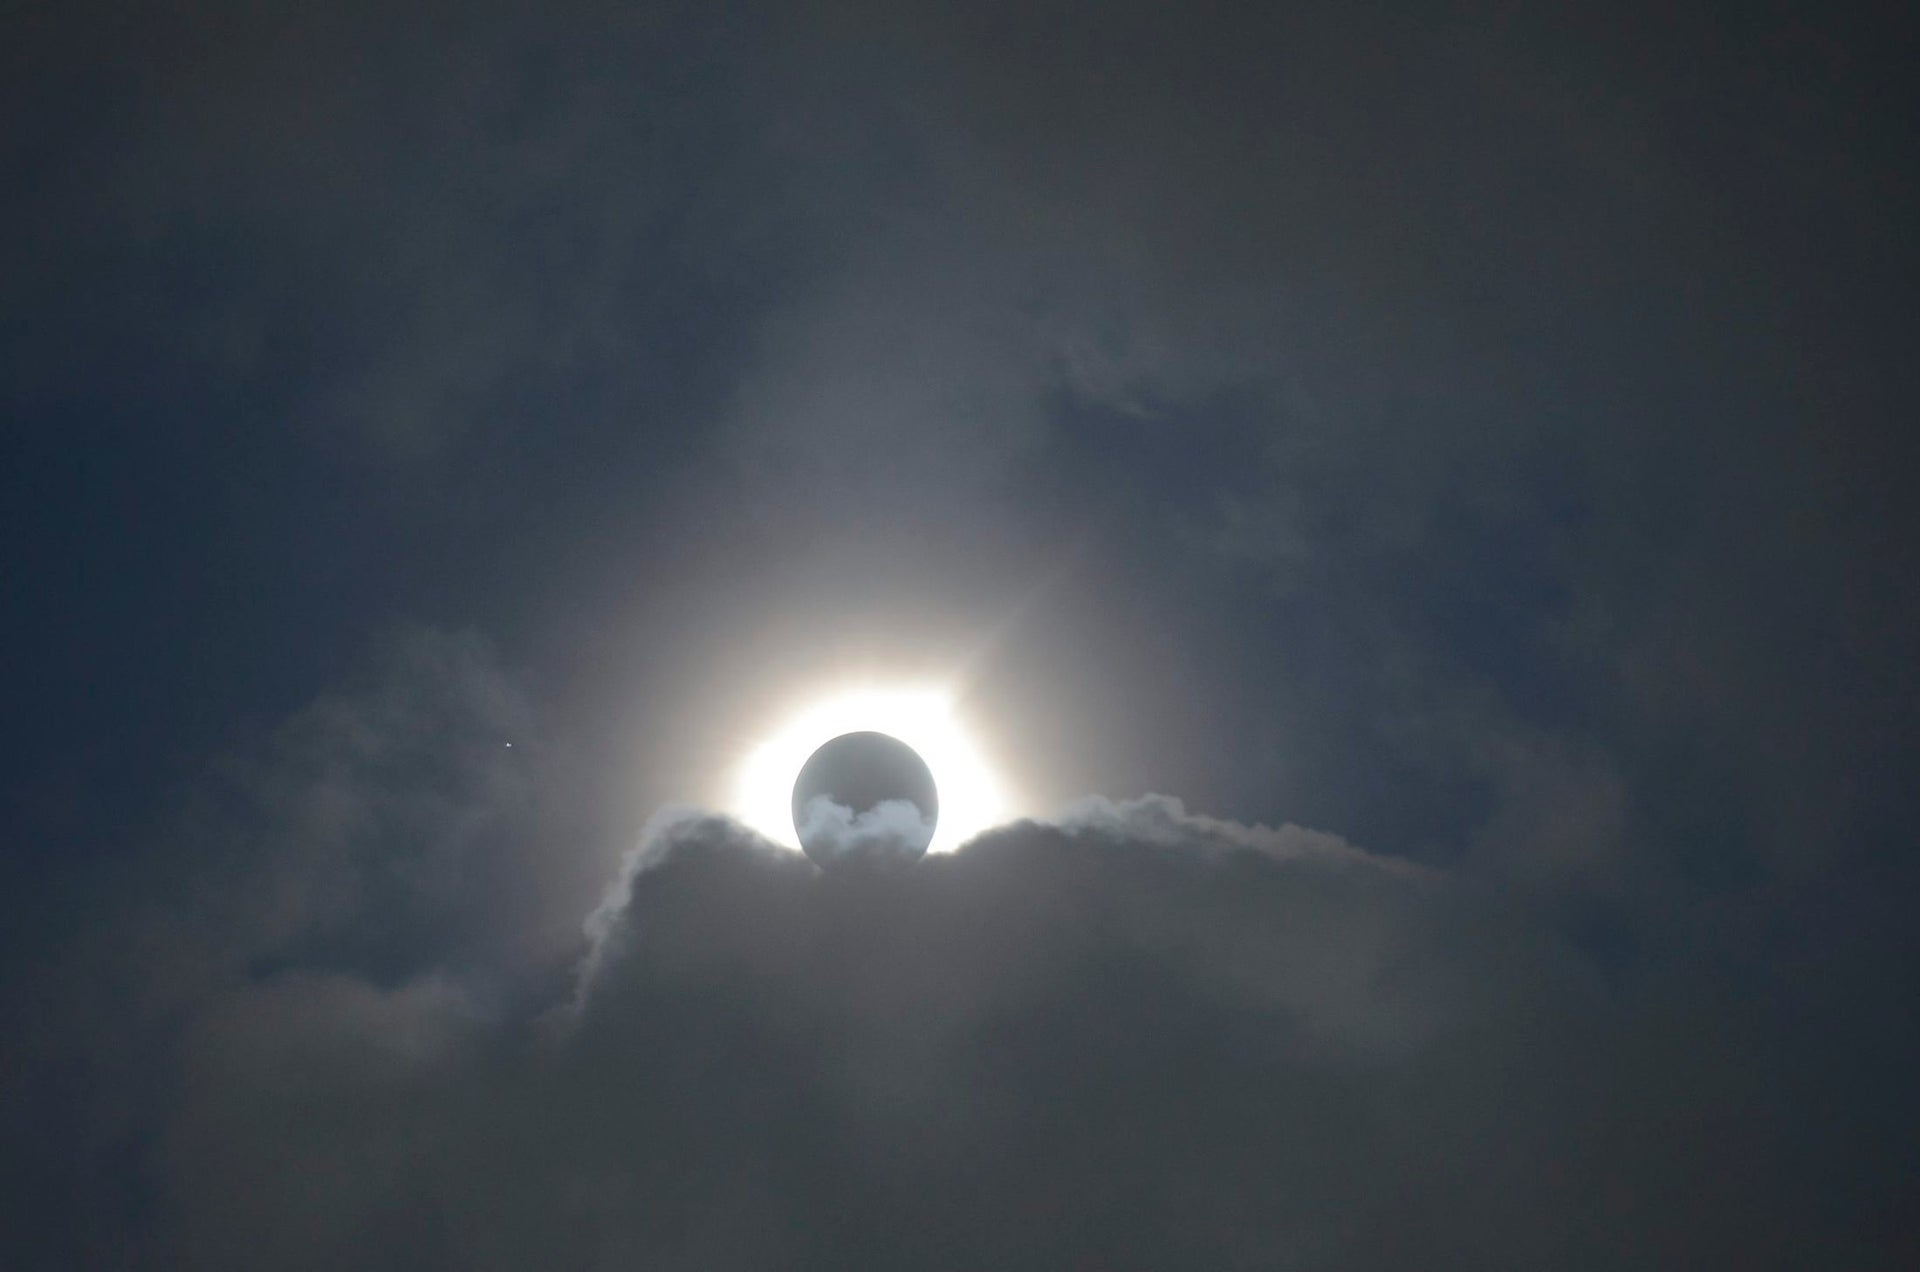 The eclipse, as seen from Carbondale, IL.